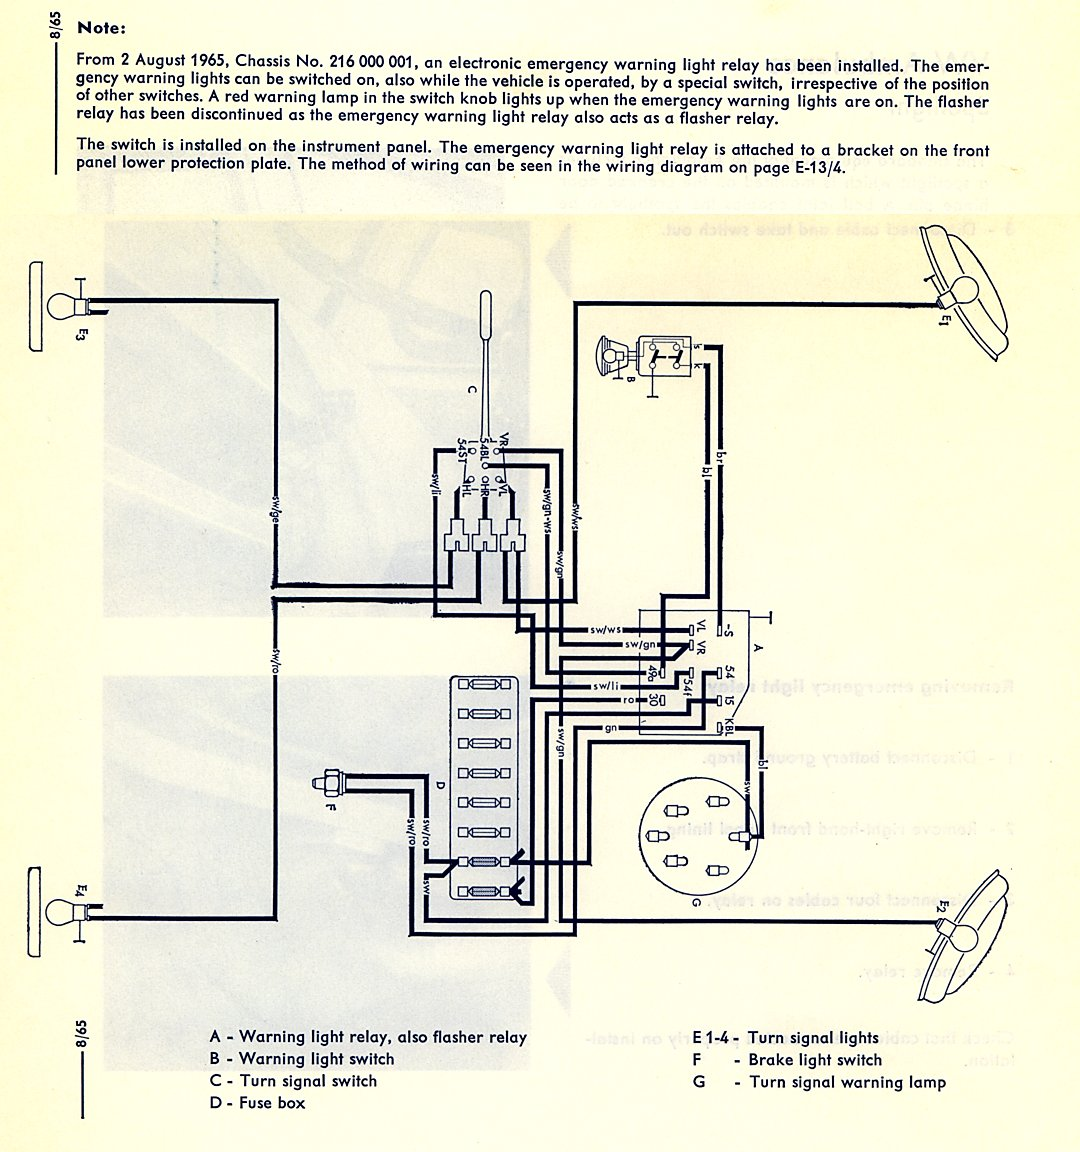 69 Vw Wiring Diagram - 19.6.ms-krankenfahrten.de •  Vw Bug Wiring Diagrams on 1972 vw beetle fuse box diagram, 1966 chevrolet impala wiring diagram, 12 volt switch wiring diagram, 1966 chevy impala wiring diagram, vw kit car wiring diagram, 1966 ford wiring diagram, 1965 vw wiring diagram, 1966 porsche wiring diagram, 67 vw wiring diagram, 1972 vw beetle engine diagram, 69 beetle wiring diagram, vw engine wiring diagram, 1966 mustang wiring diagram, 1968 vw beetle engine diagram, vw beetle wiring diagram, classic beetle wiring diagram, 1966 pontiac gto wiring diagram, 1966 corvette wiring diagram, 1974 super beetle wiring diagram, 1956 vw wiring diagram,